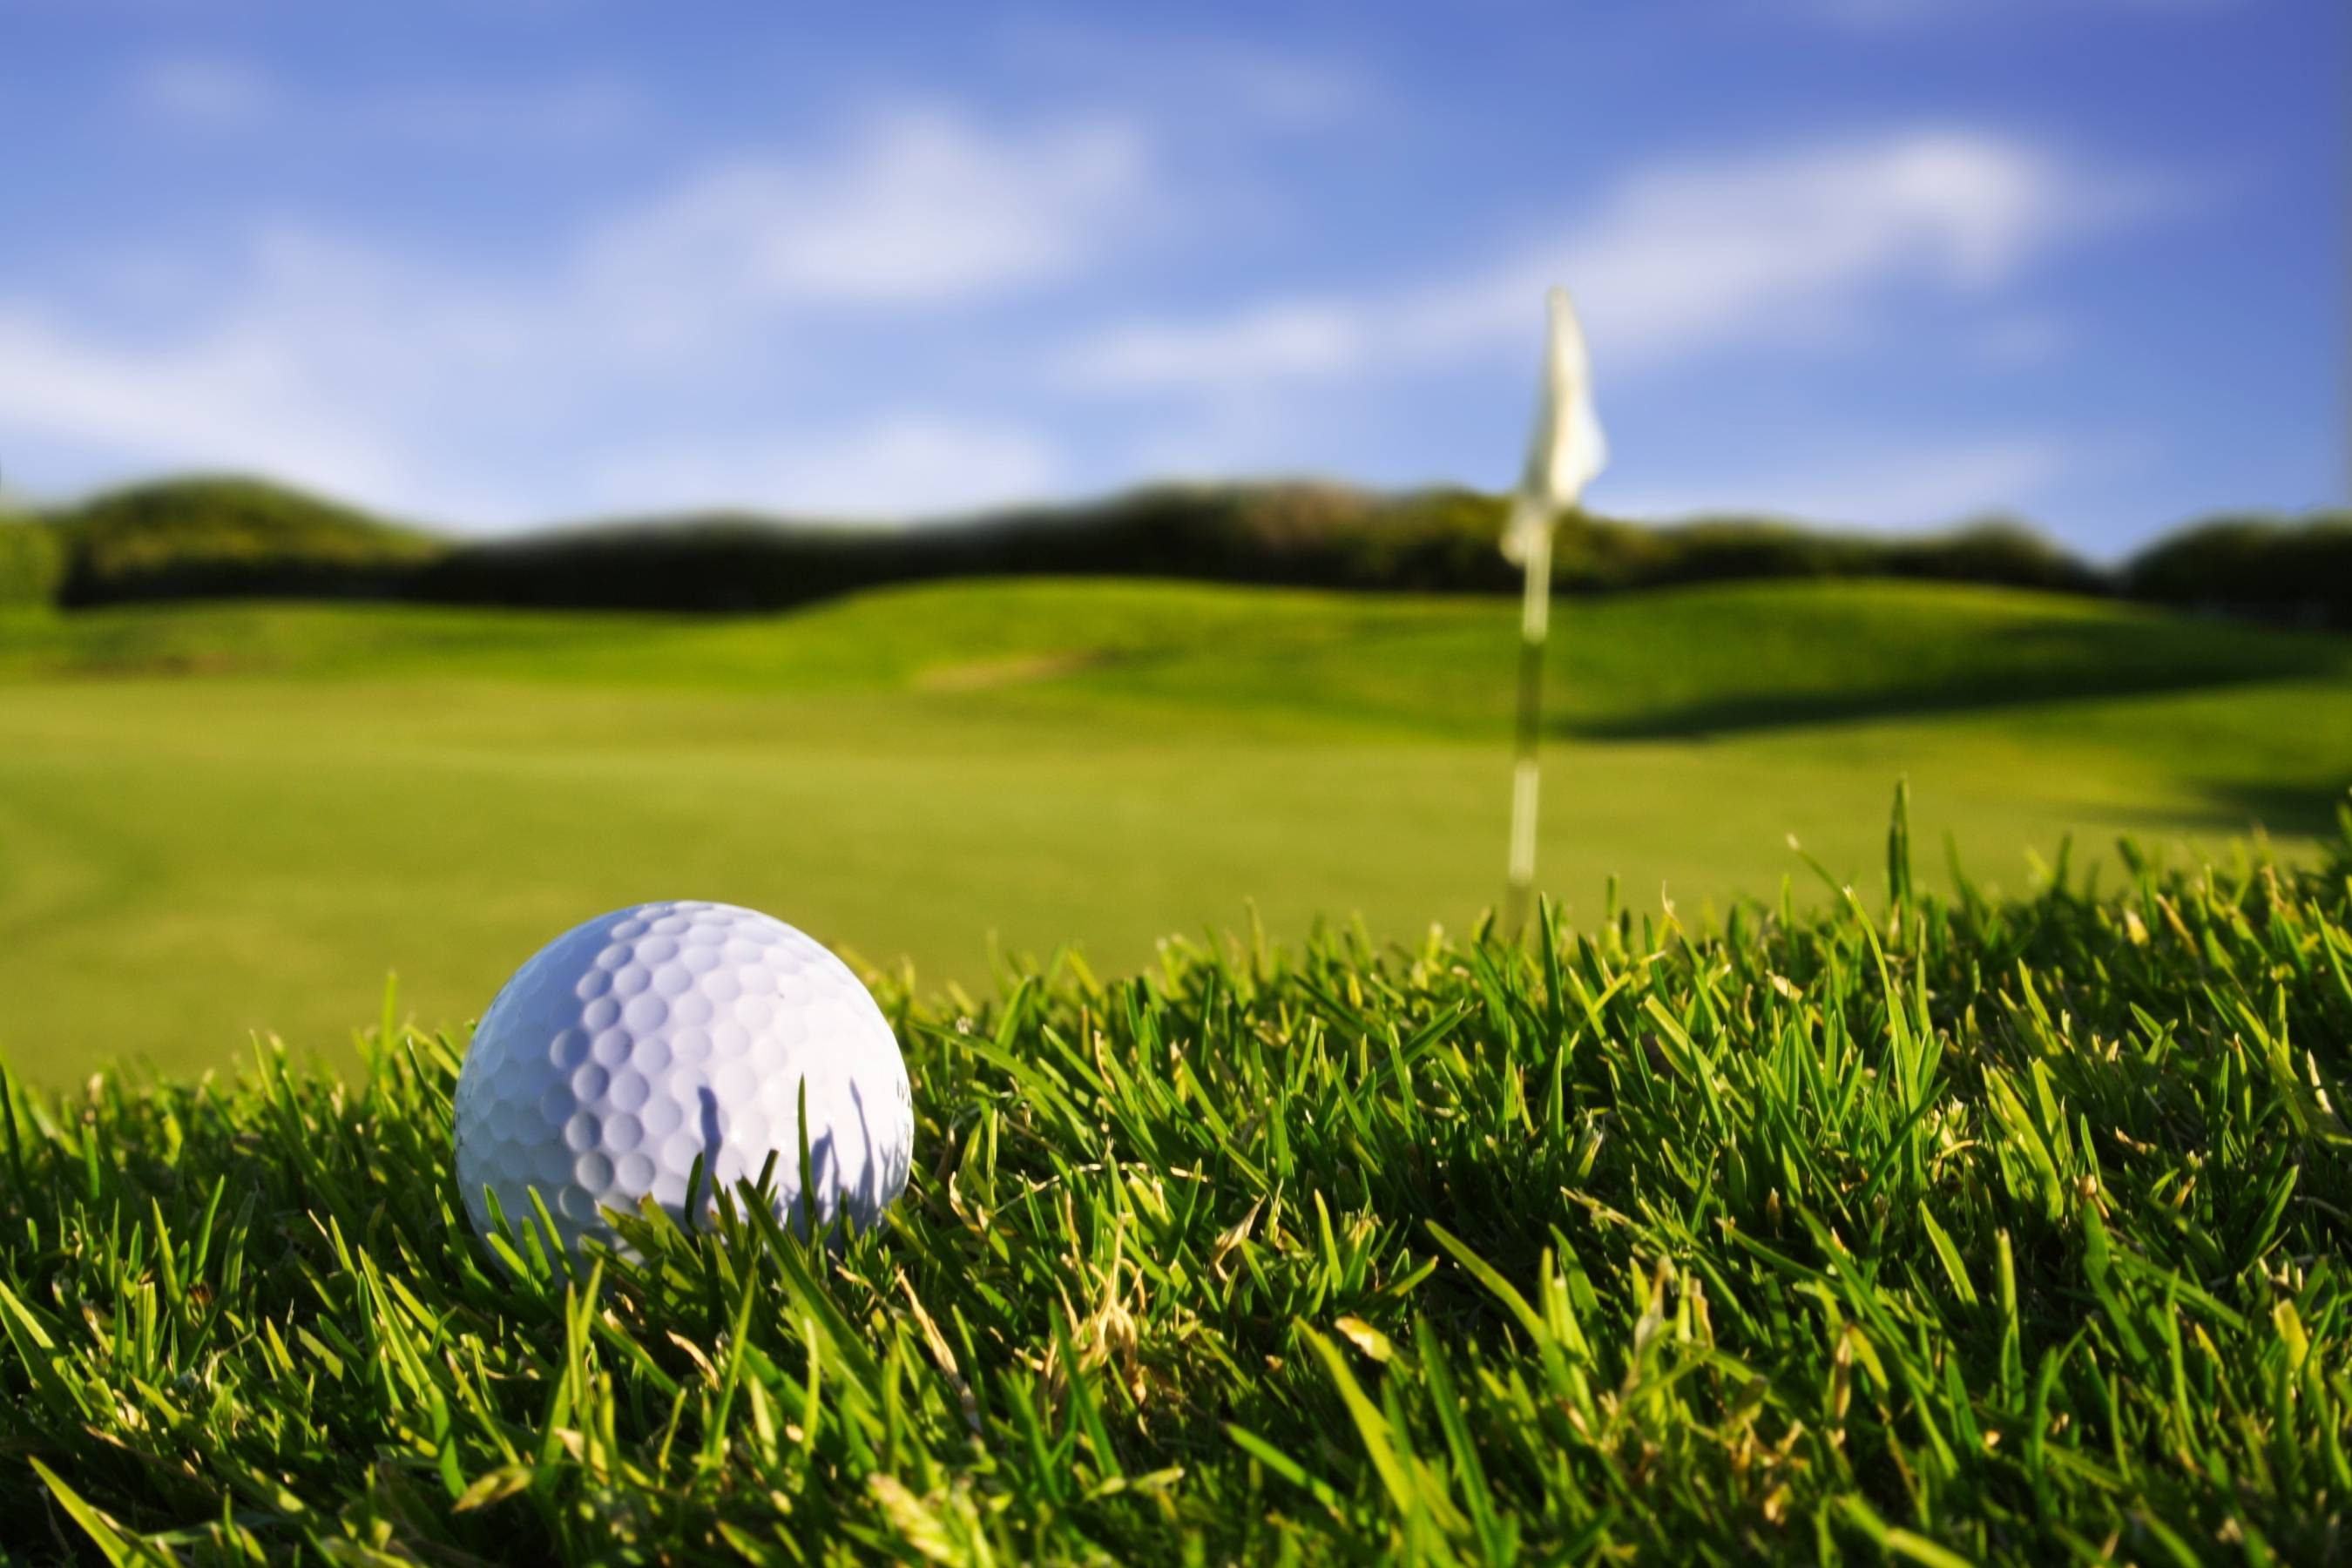 wallpapers for desktop backgrounds hd golf